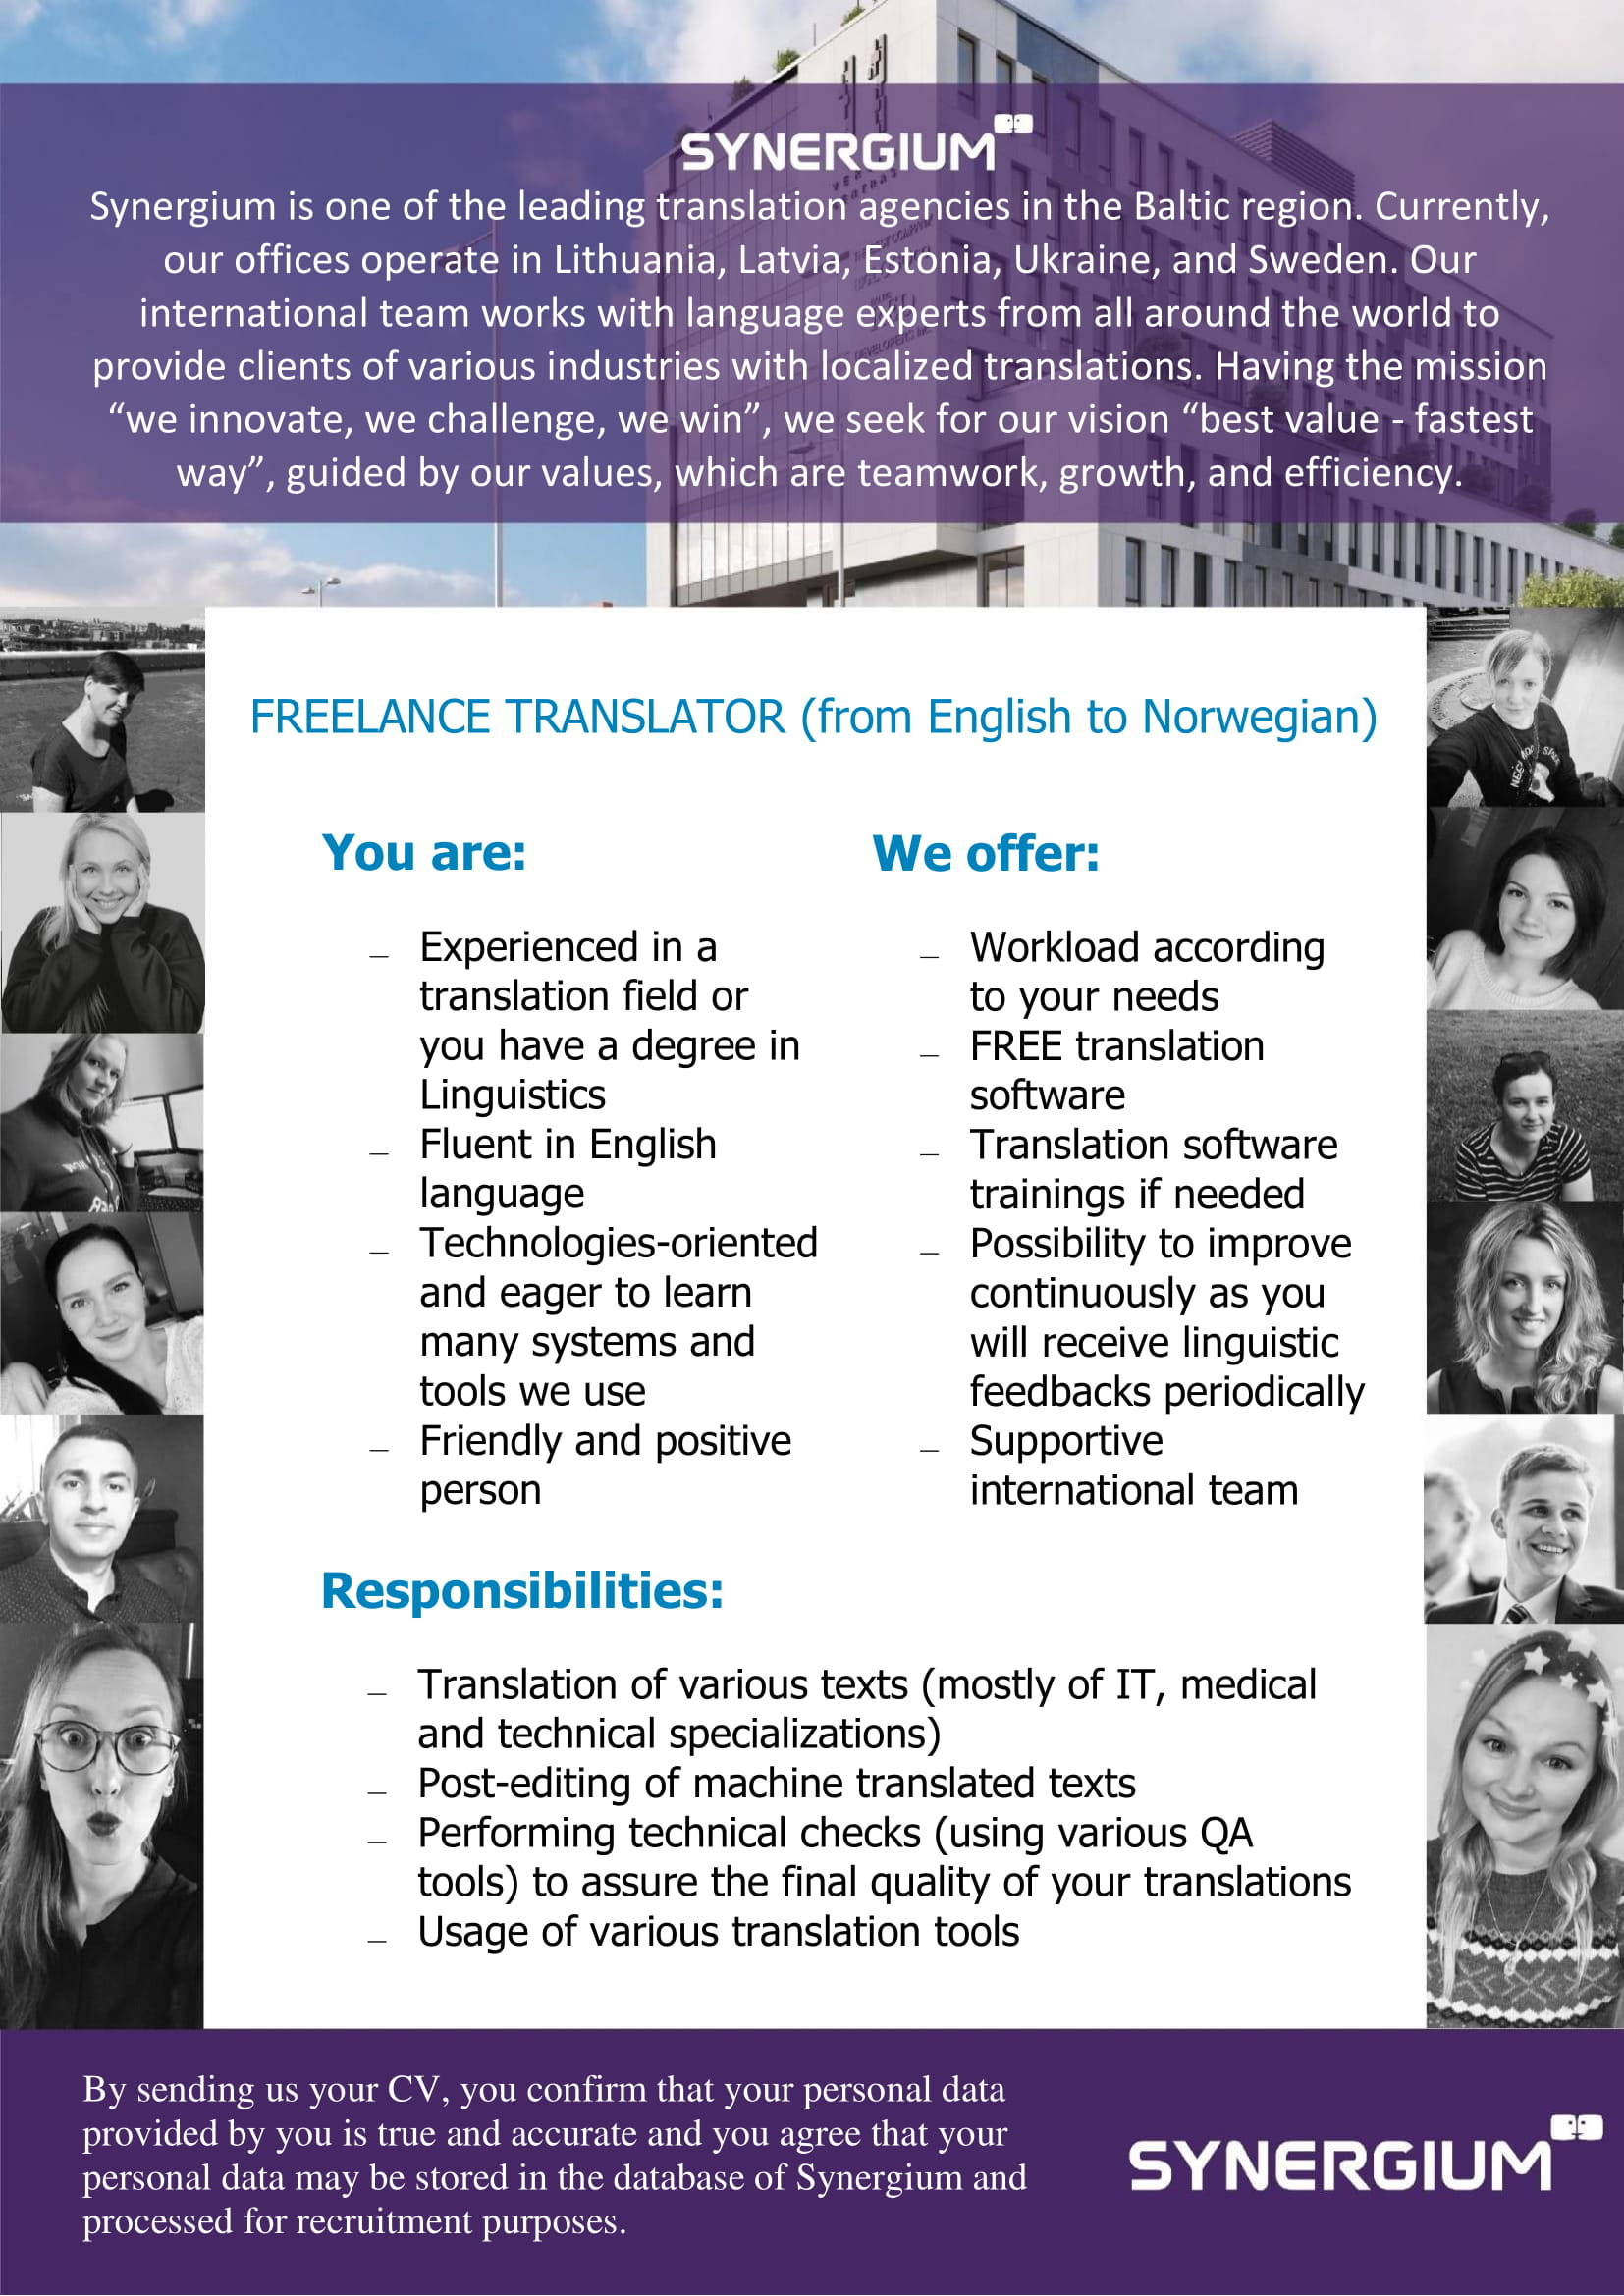 freelance translator from english to norwegian job advertisement synergium